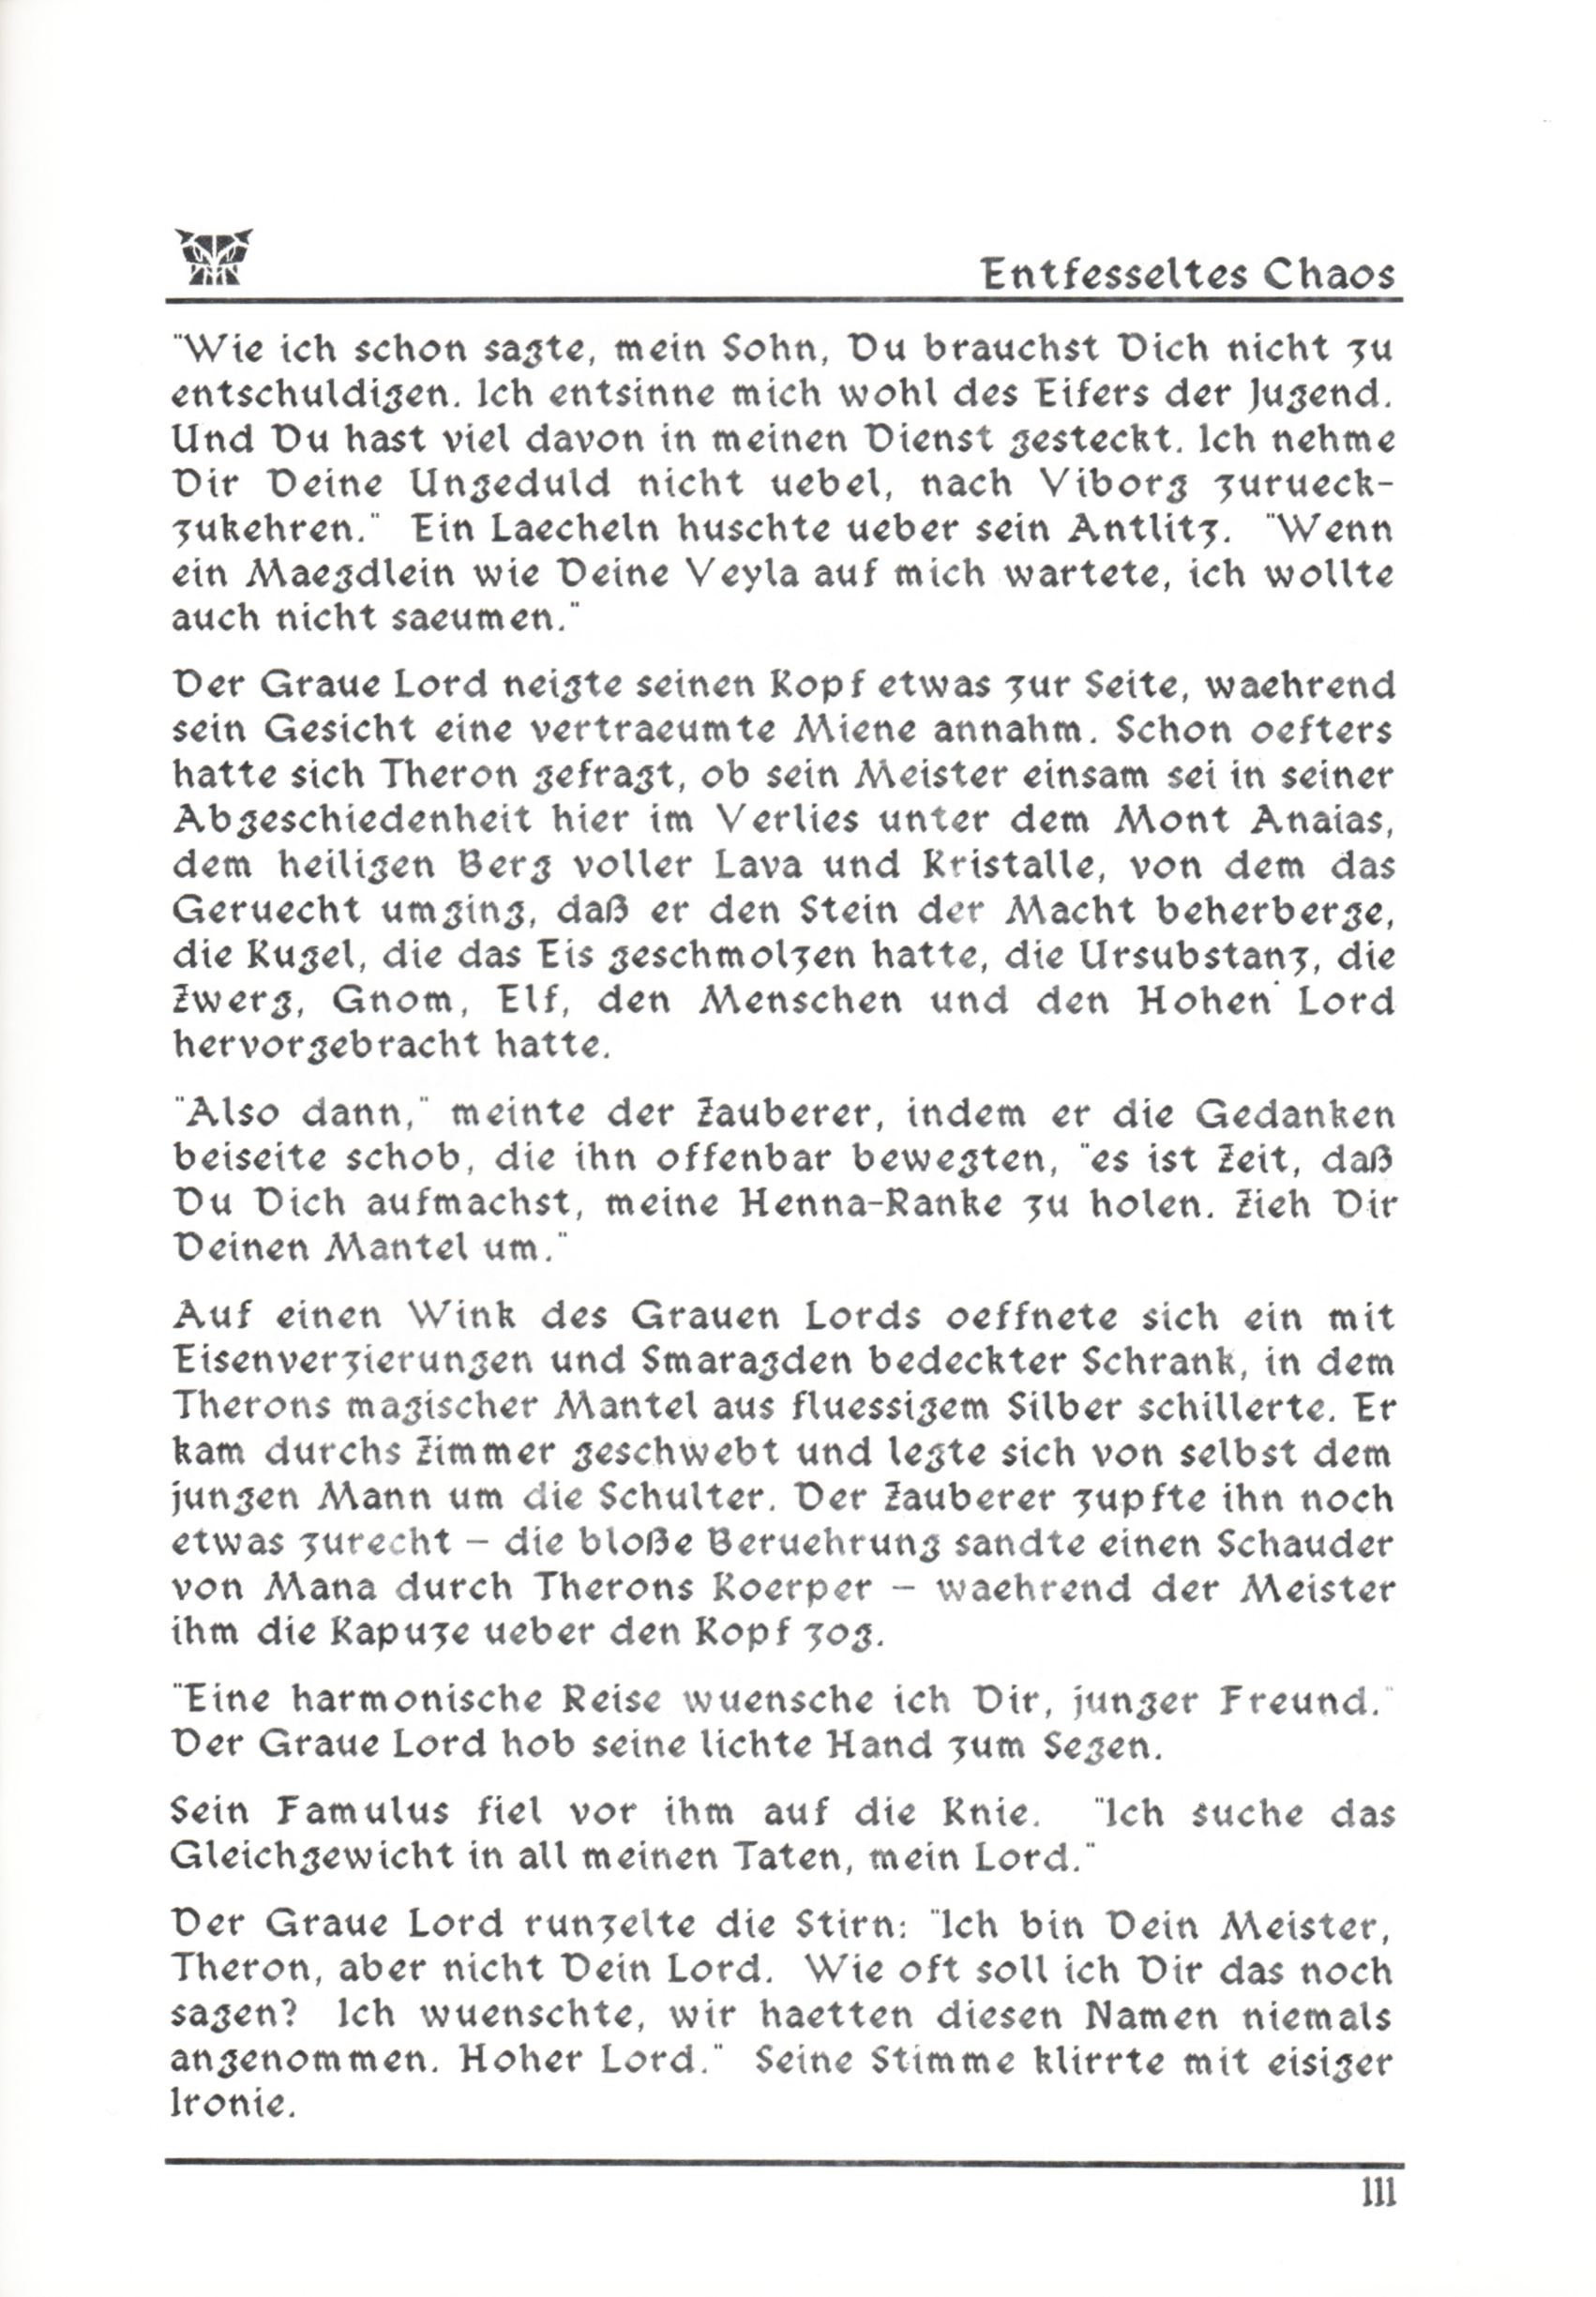 Game - Dungeon Master - DE - PC - Psygnosis - Manual - Page 007 - Scan